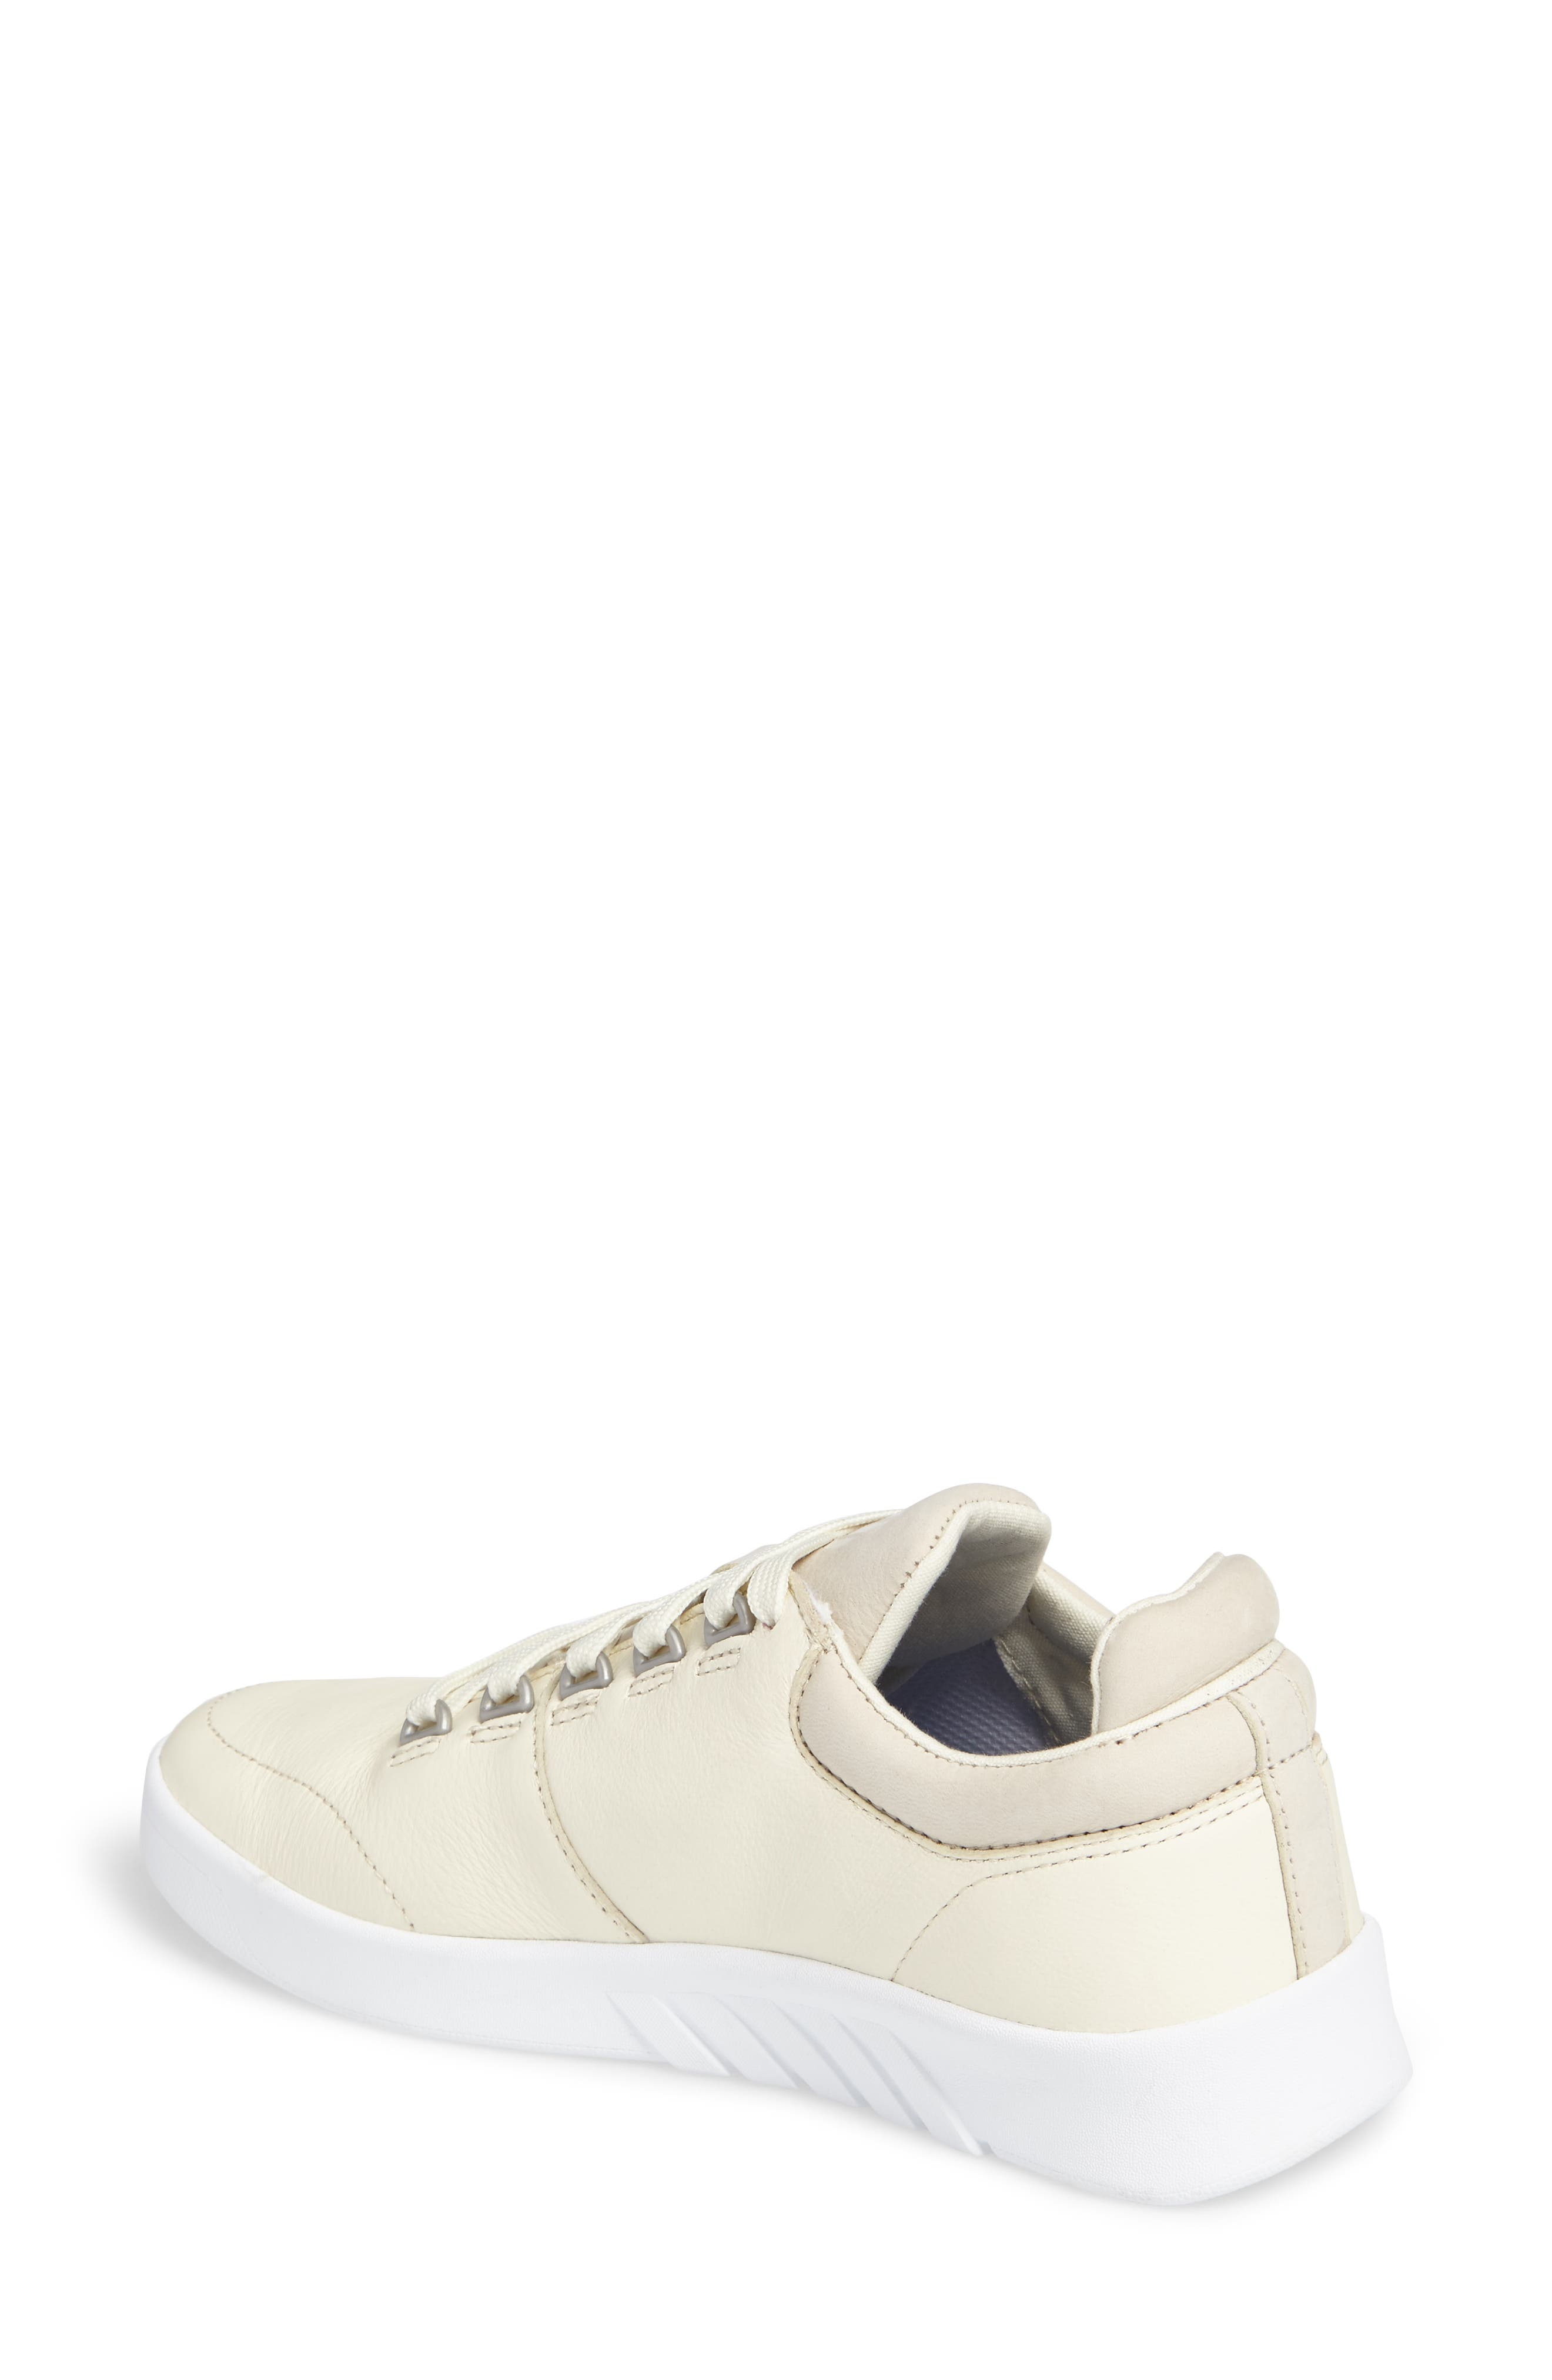 Aero Trainer Sneaker,                             Alternate thumbnail 2, color,                             VANILLA ICE/ WHITE